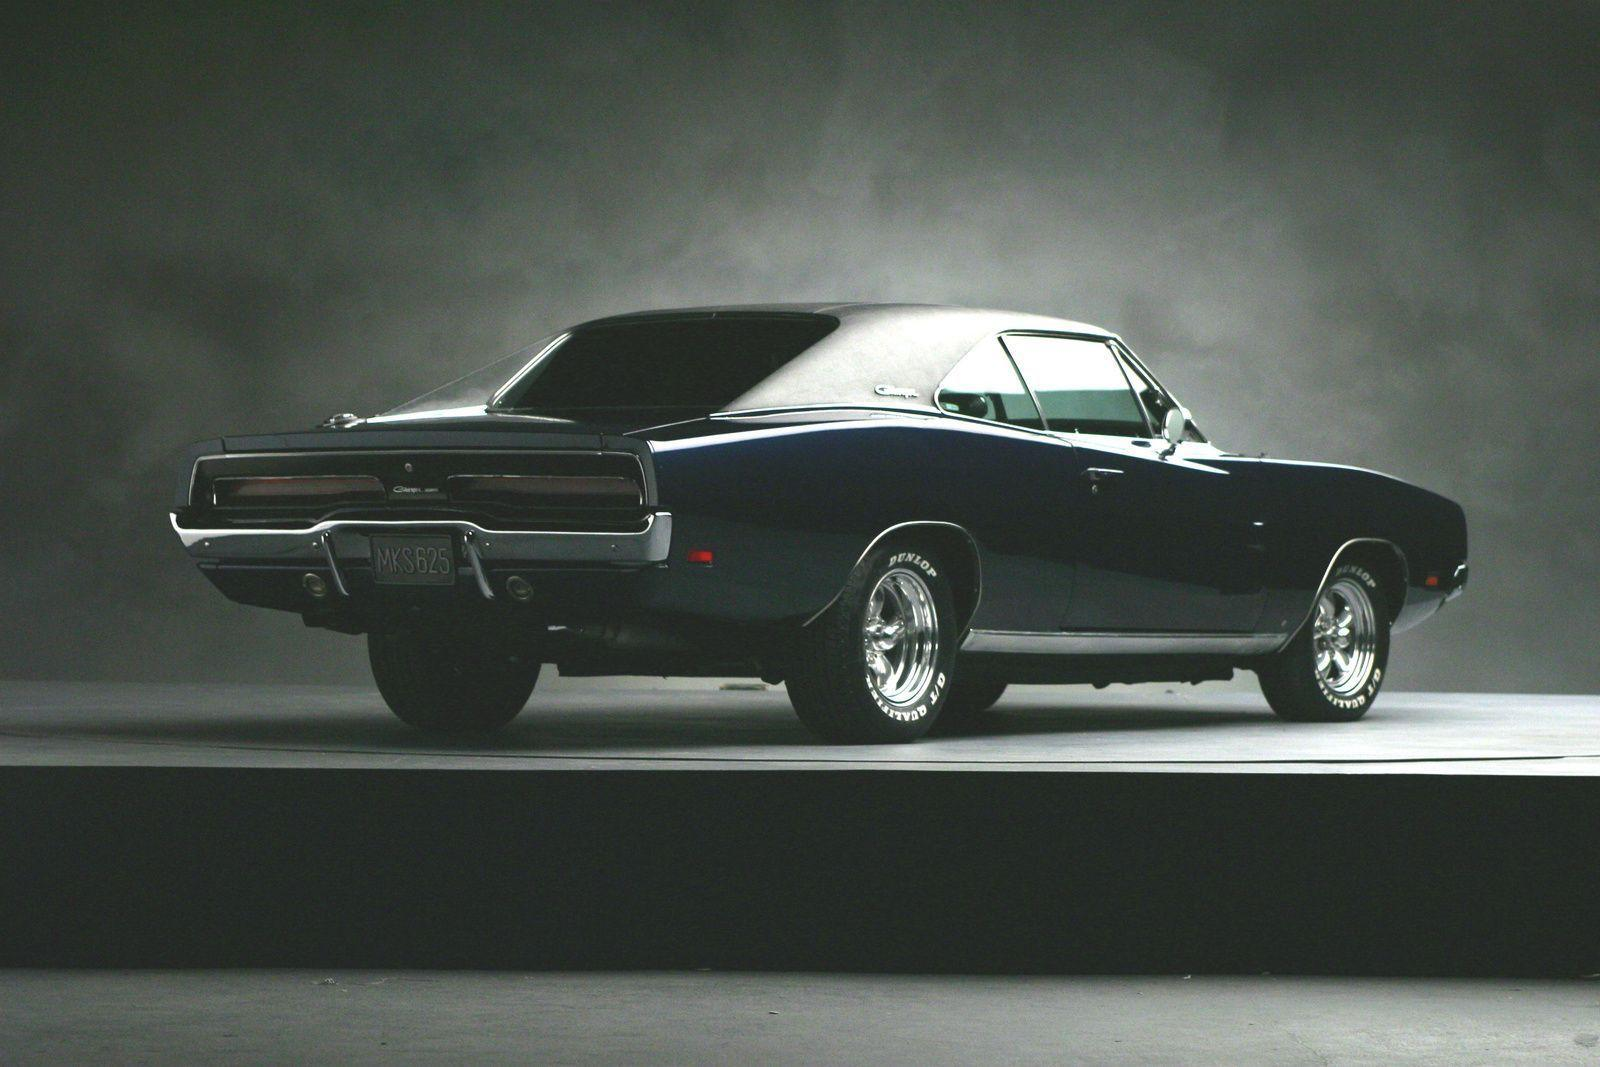 69 Dodge Charger Wallpapers 1600x1067